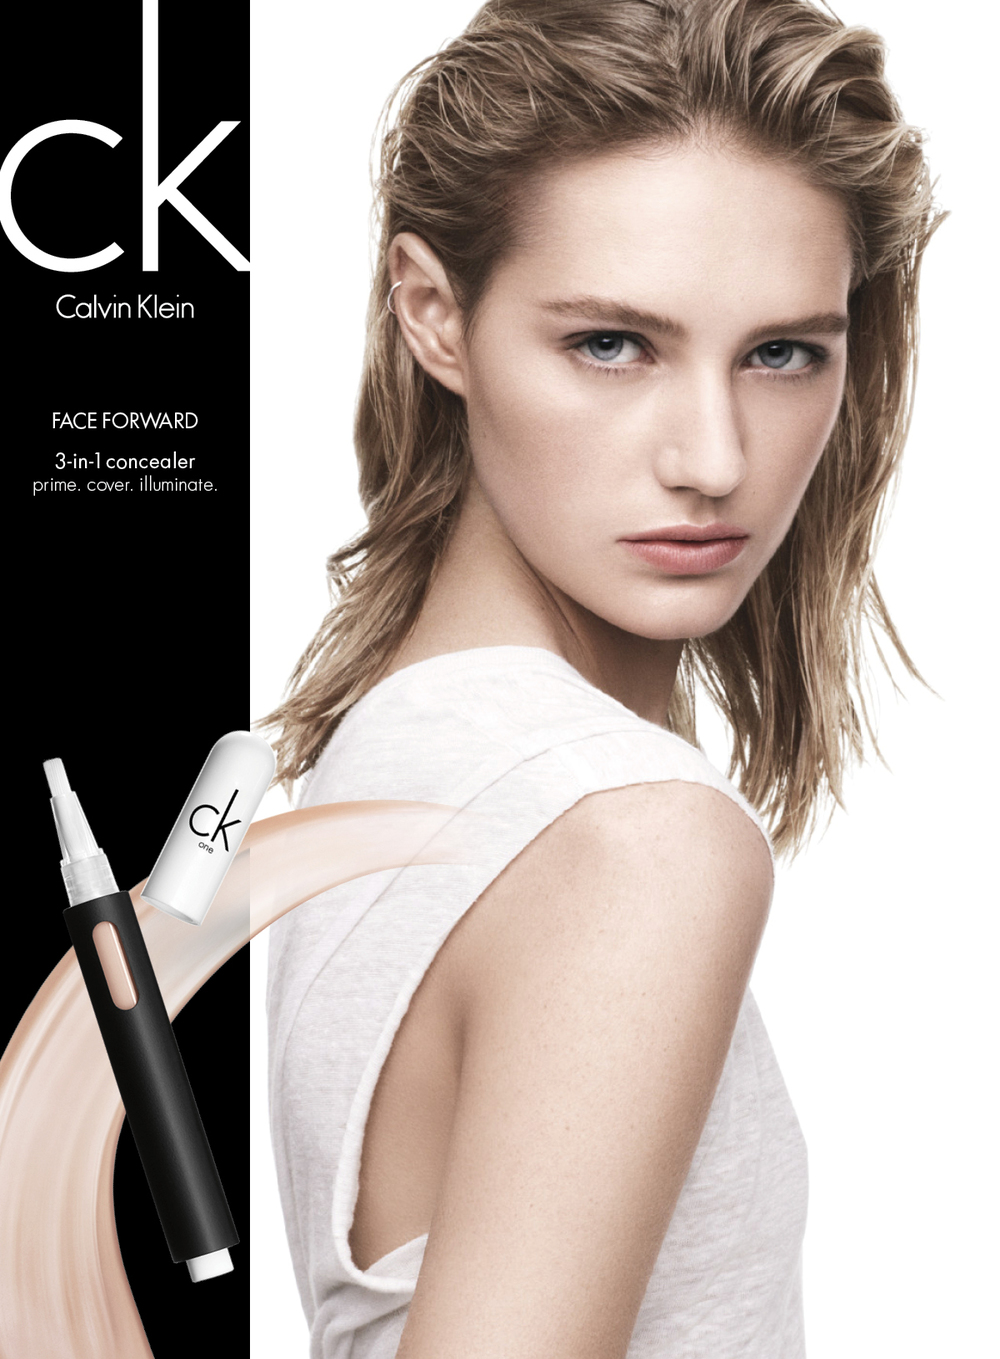 CK COLOR SINGLE PAGE 8%22X10.875%22_3IN1 CONCEALER.jpg